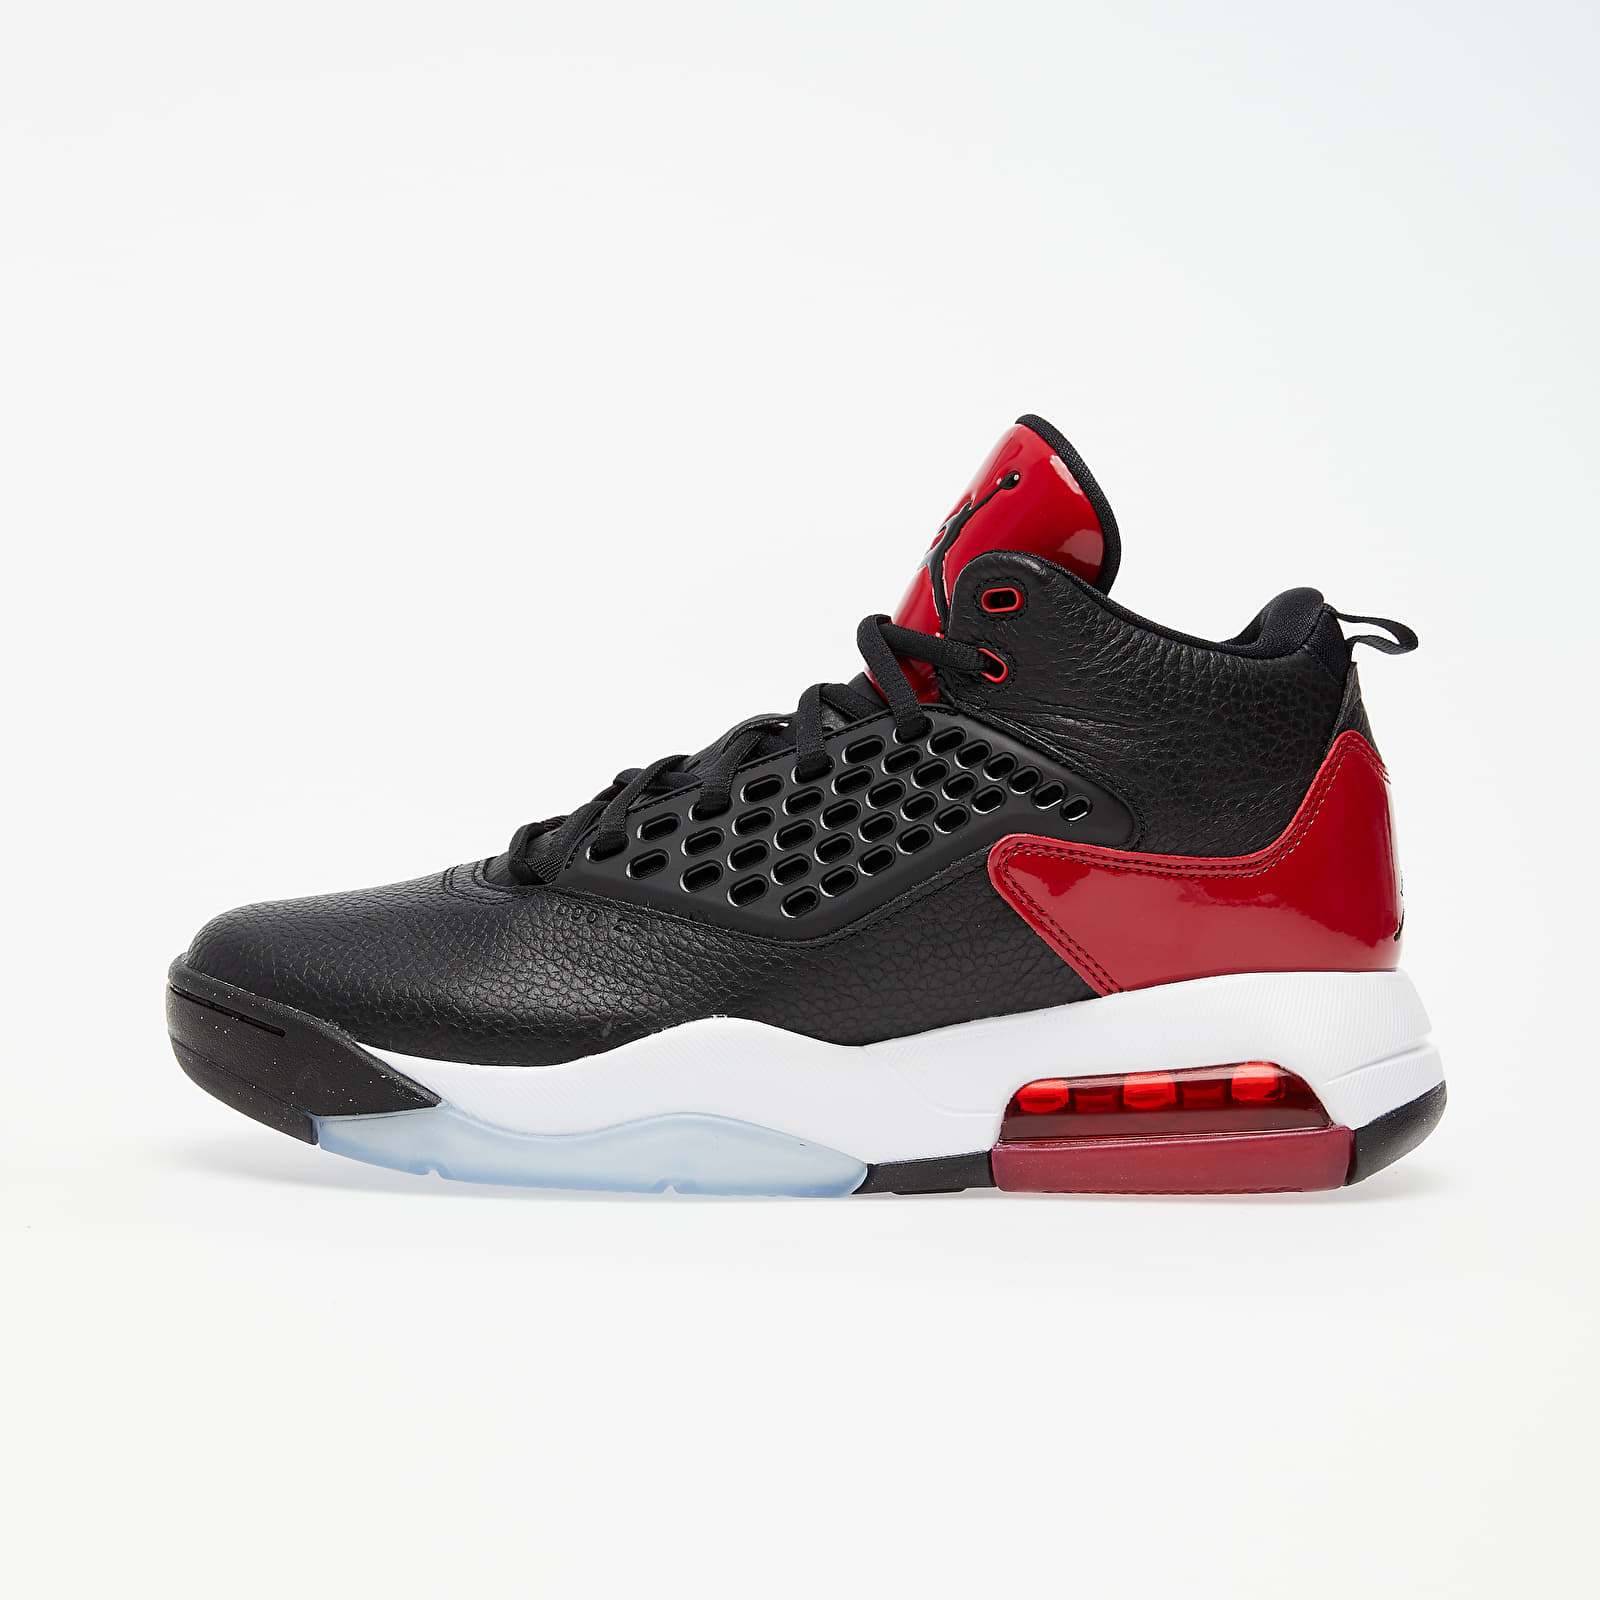 Chaussures et baskets homme Jordan Maxin 200 Black/ Black-Gym Red-White